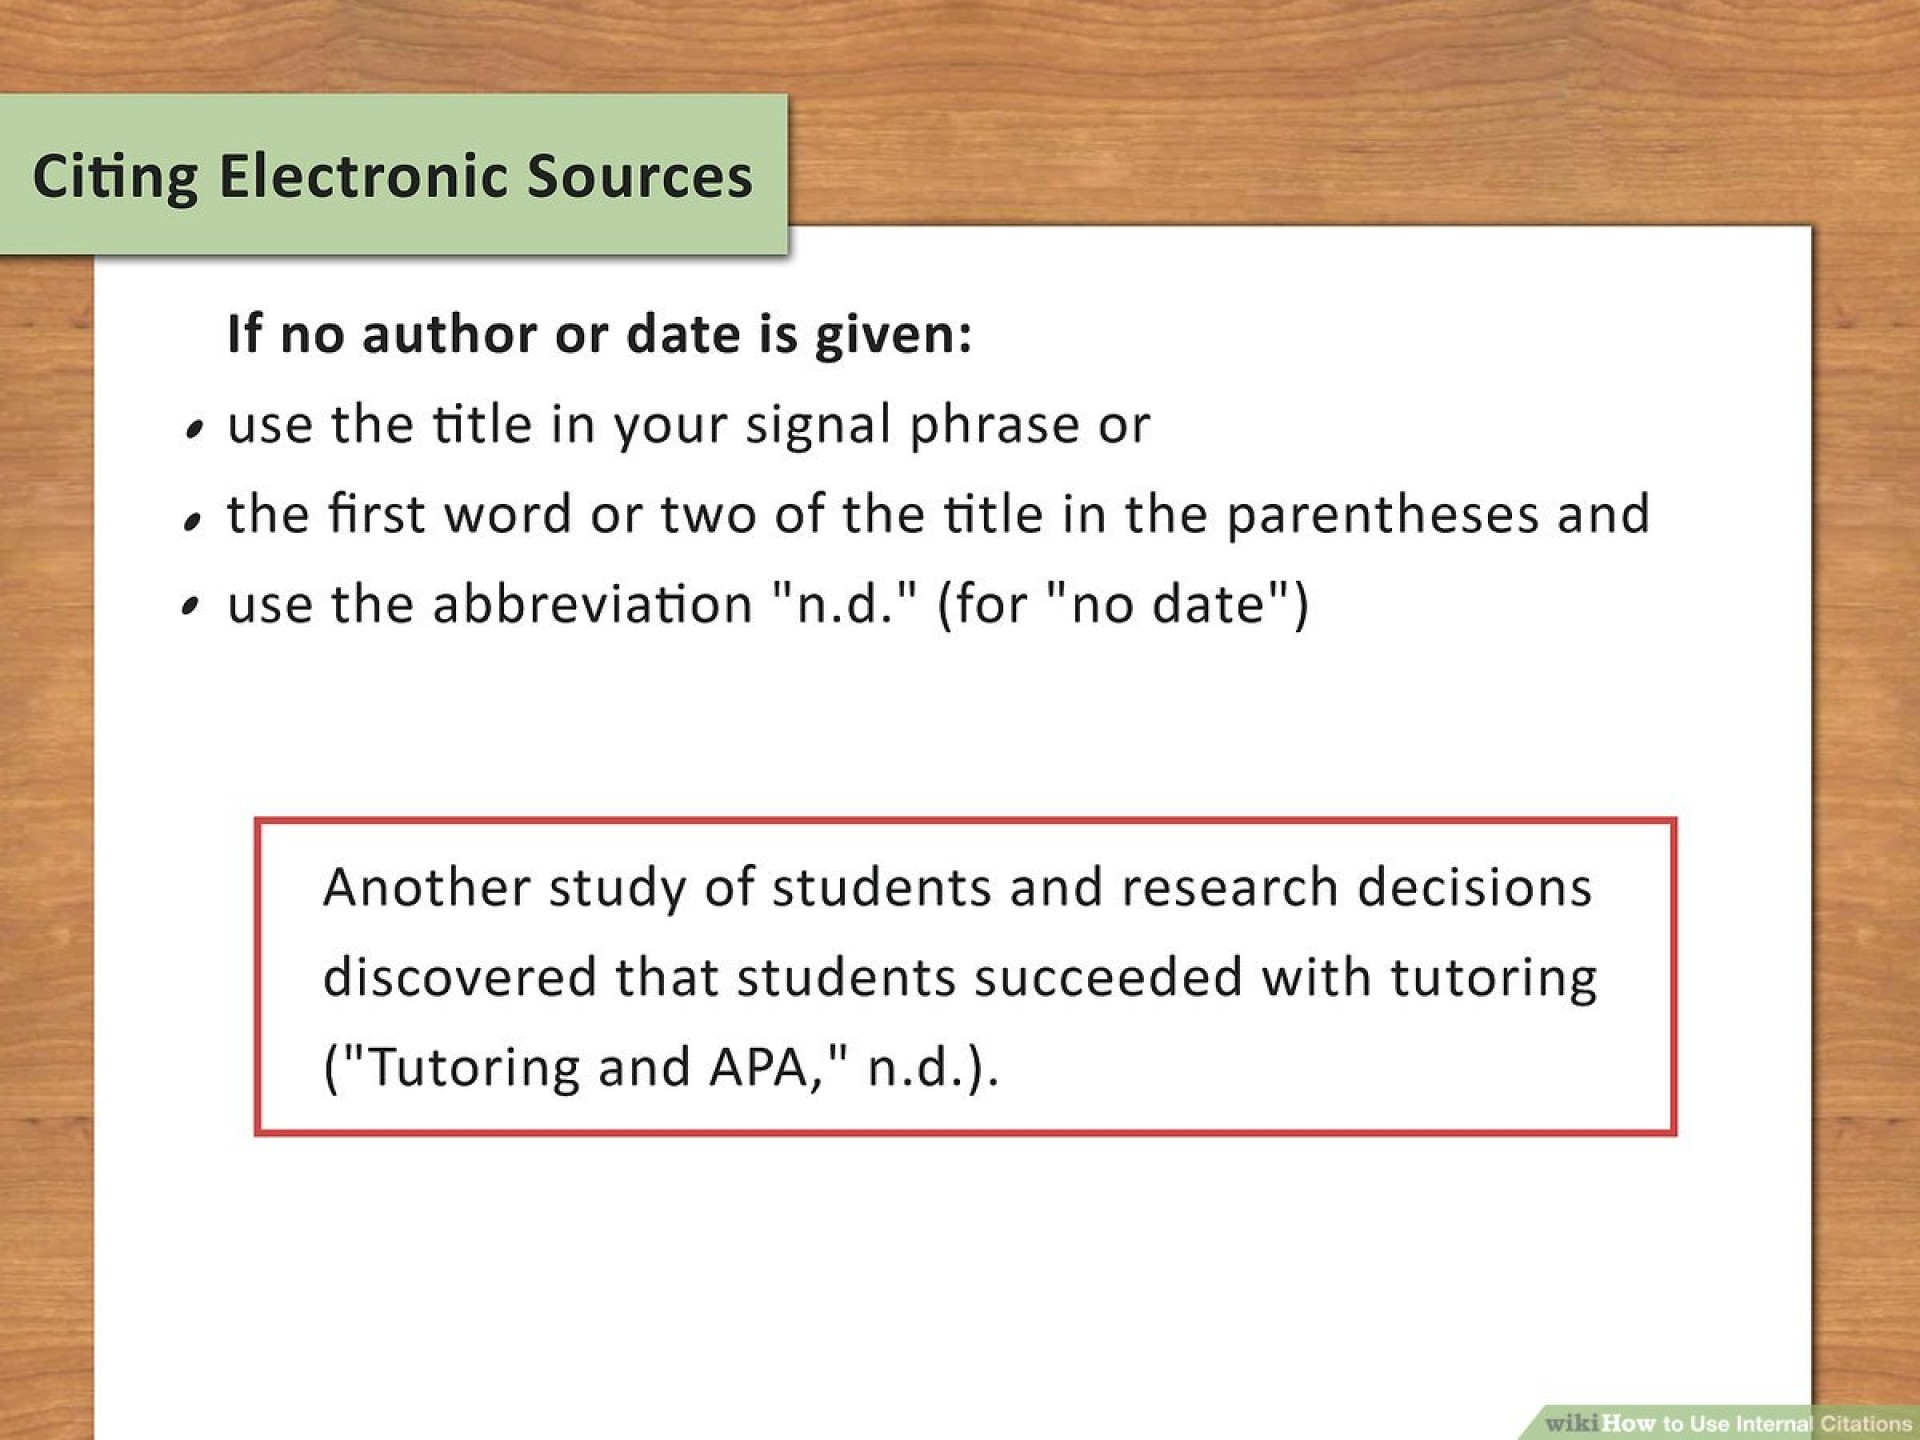 021 Research Paper Citations In Mla Aid1370551 V4 1200px Use Internal Step Awesome A Citing Sources Citation Example 1920